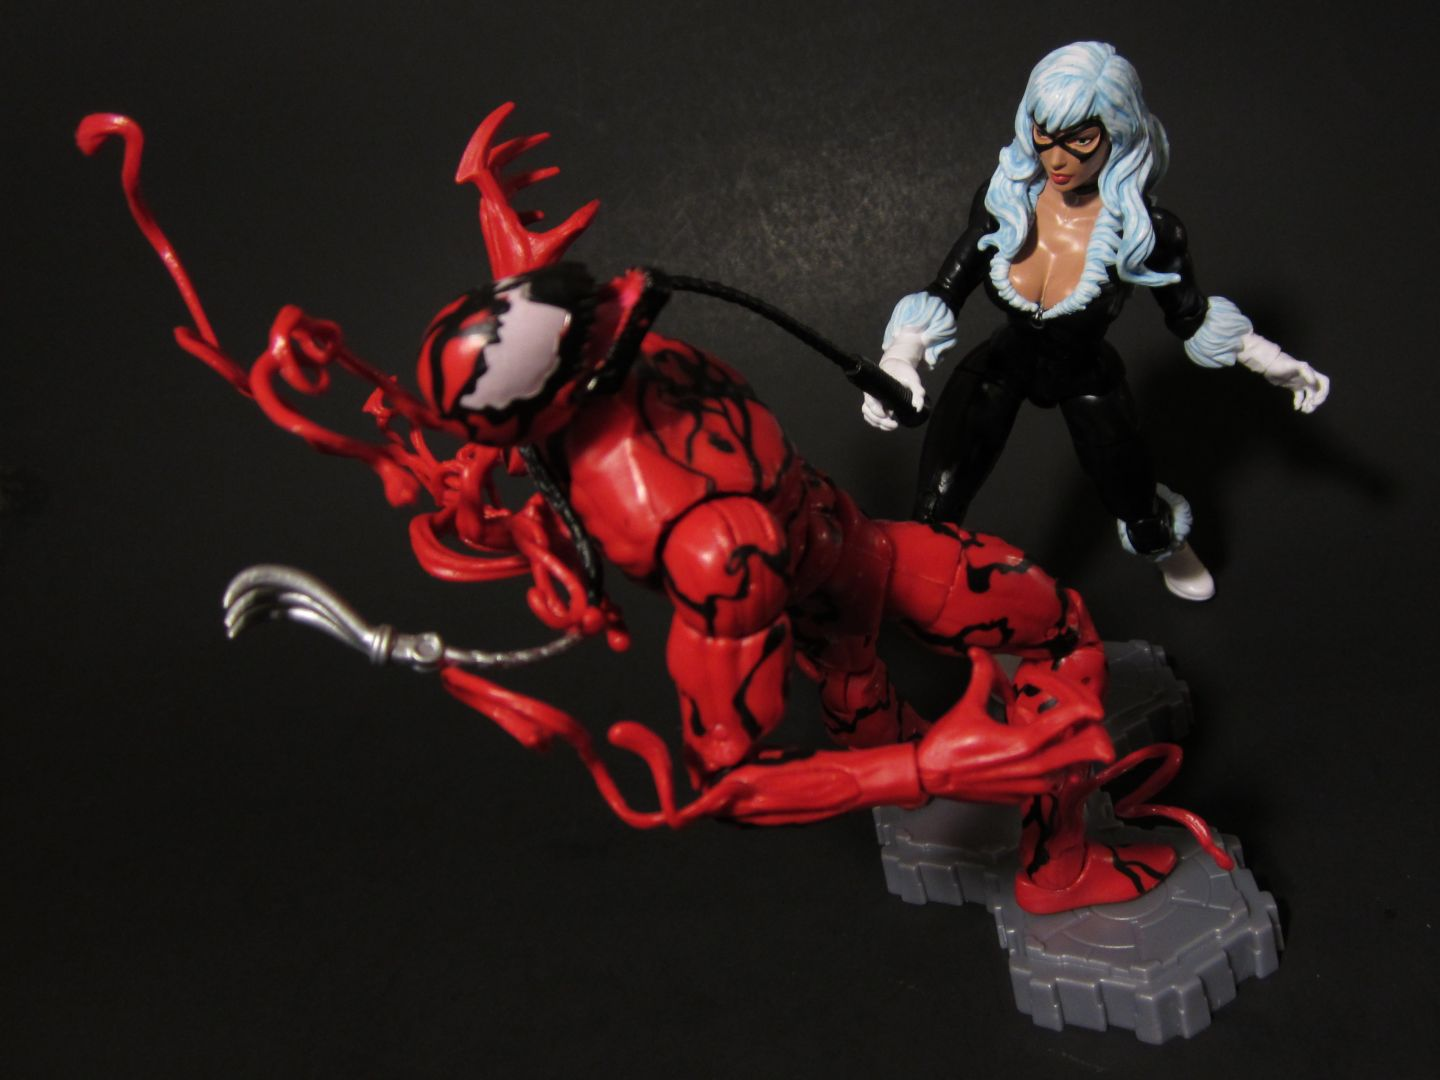 black spiderman vs carnage - photo #3